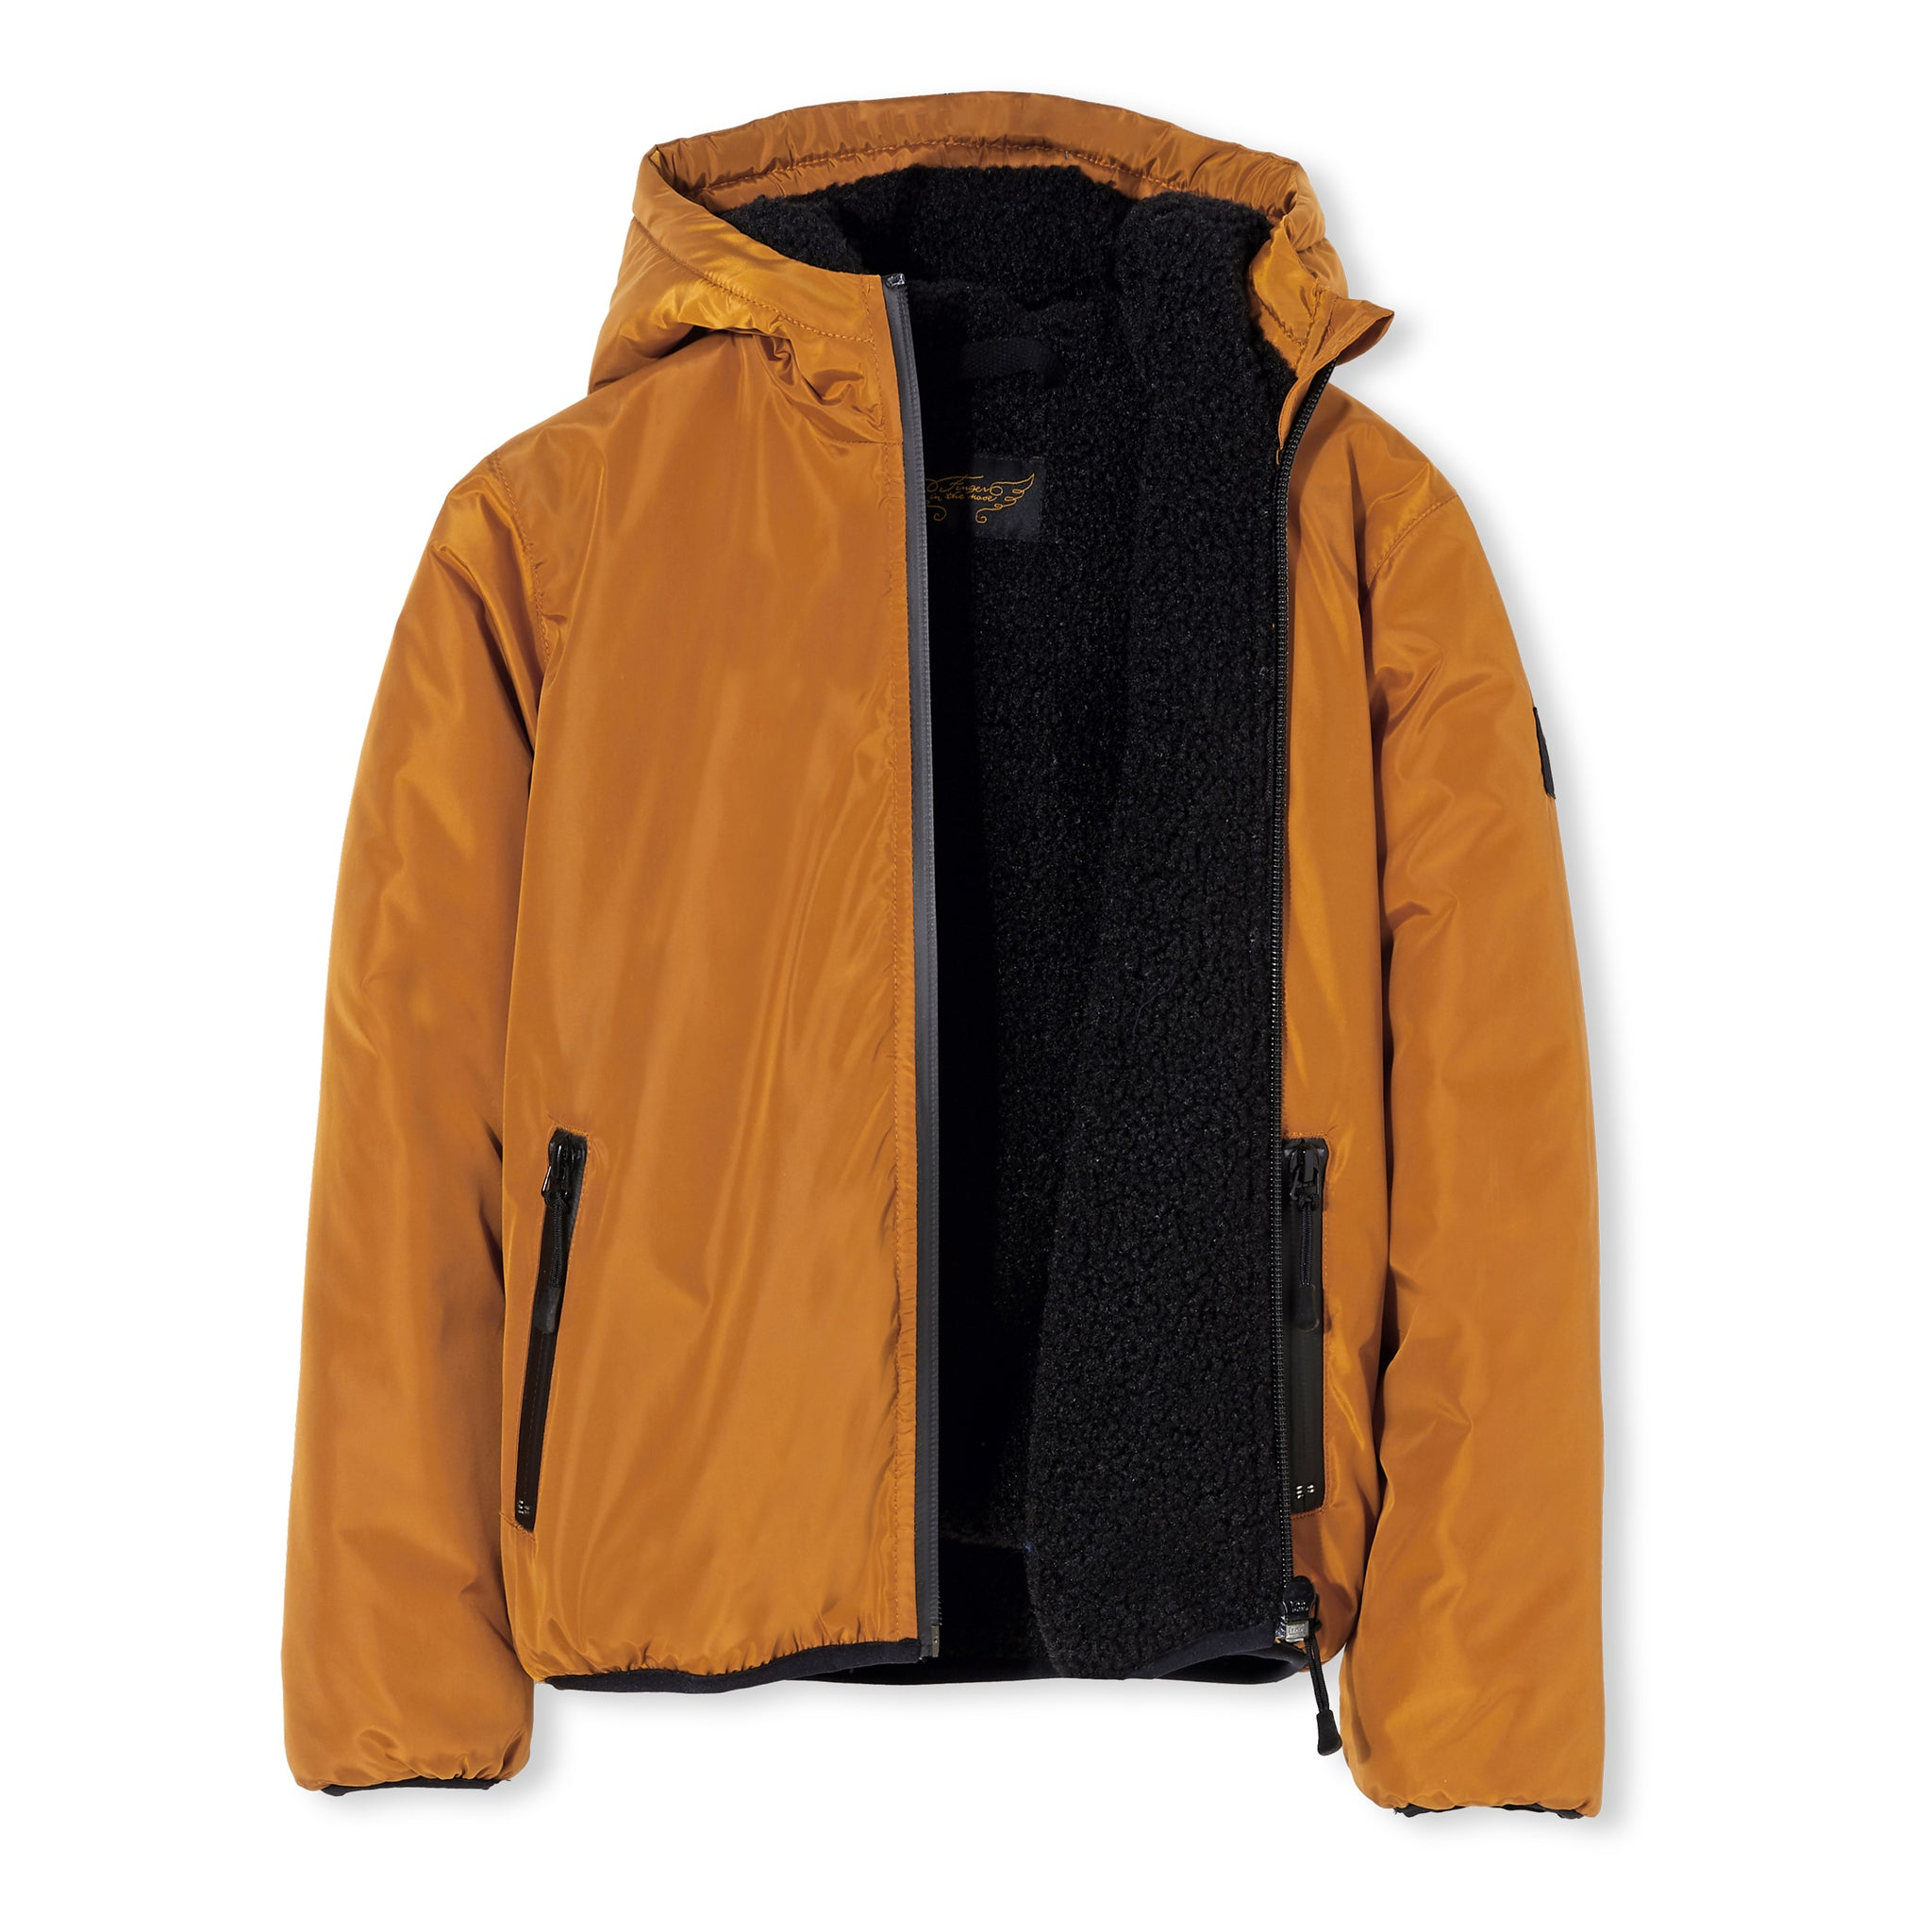 BUCKLEY RAIN Crust - Hooded Jacket 2